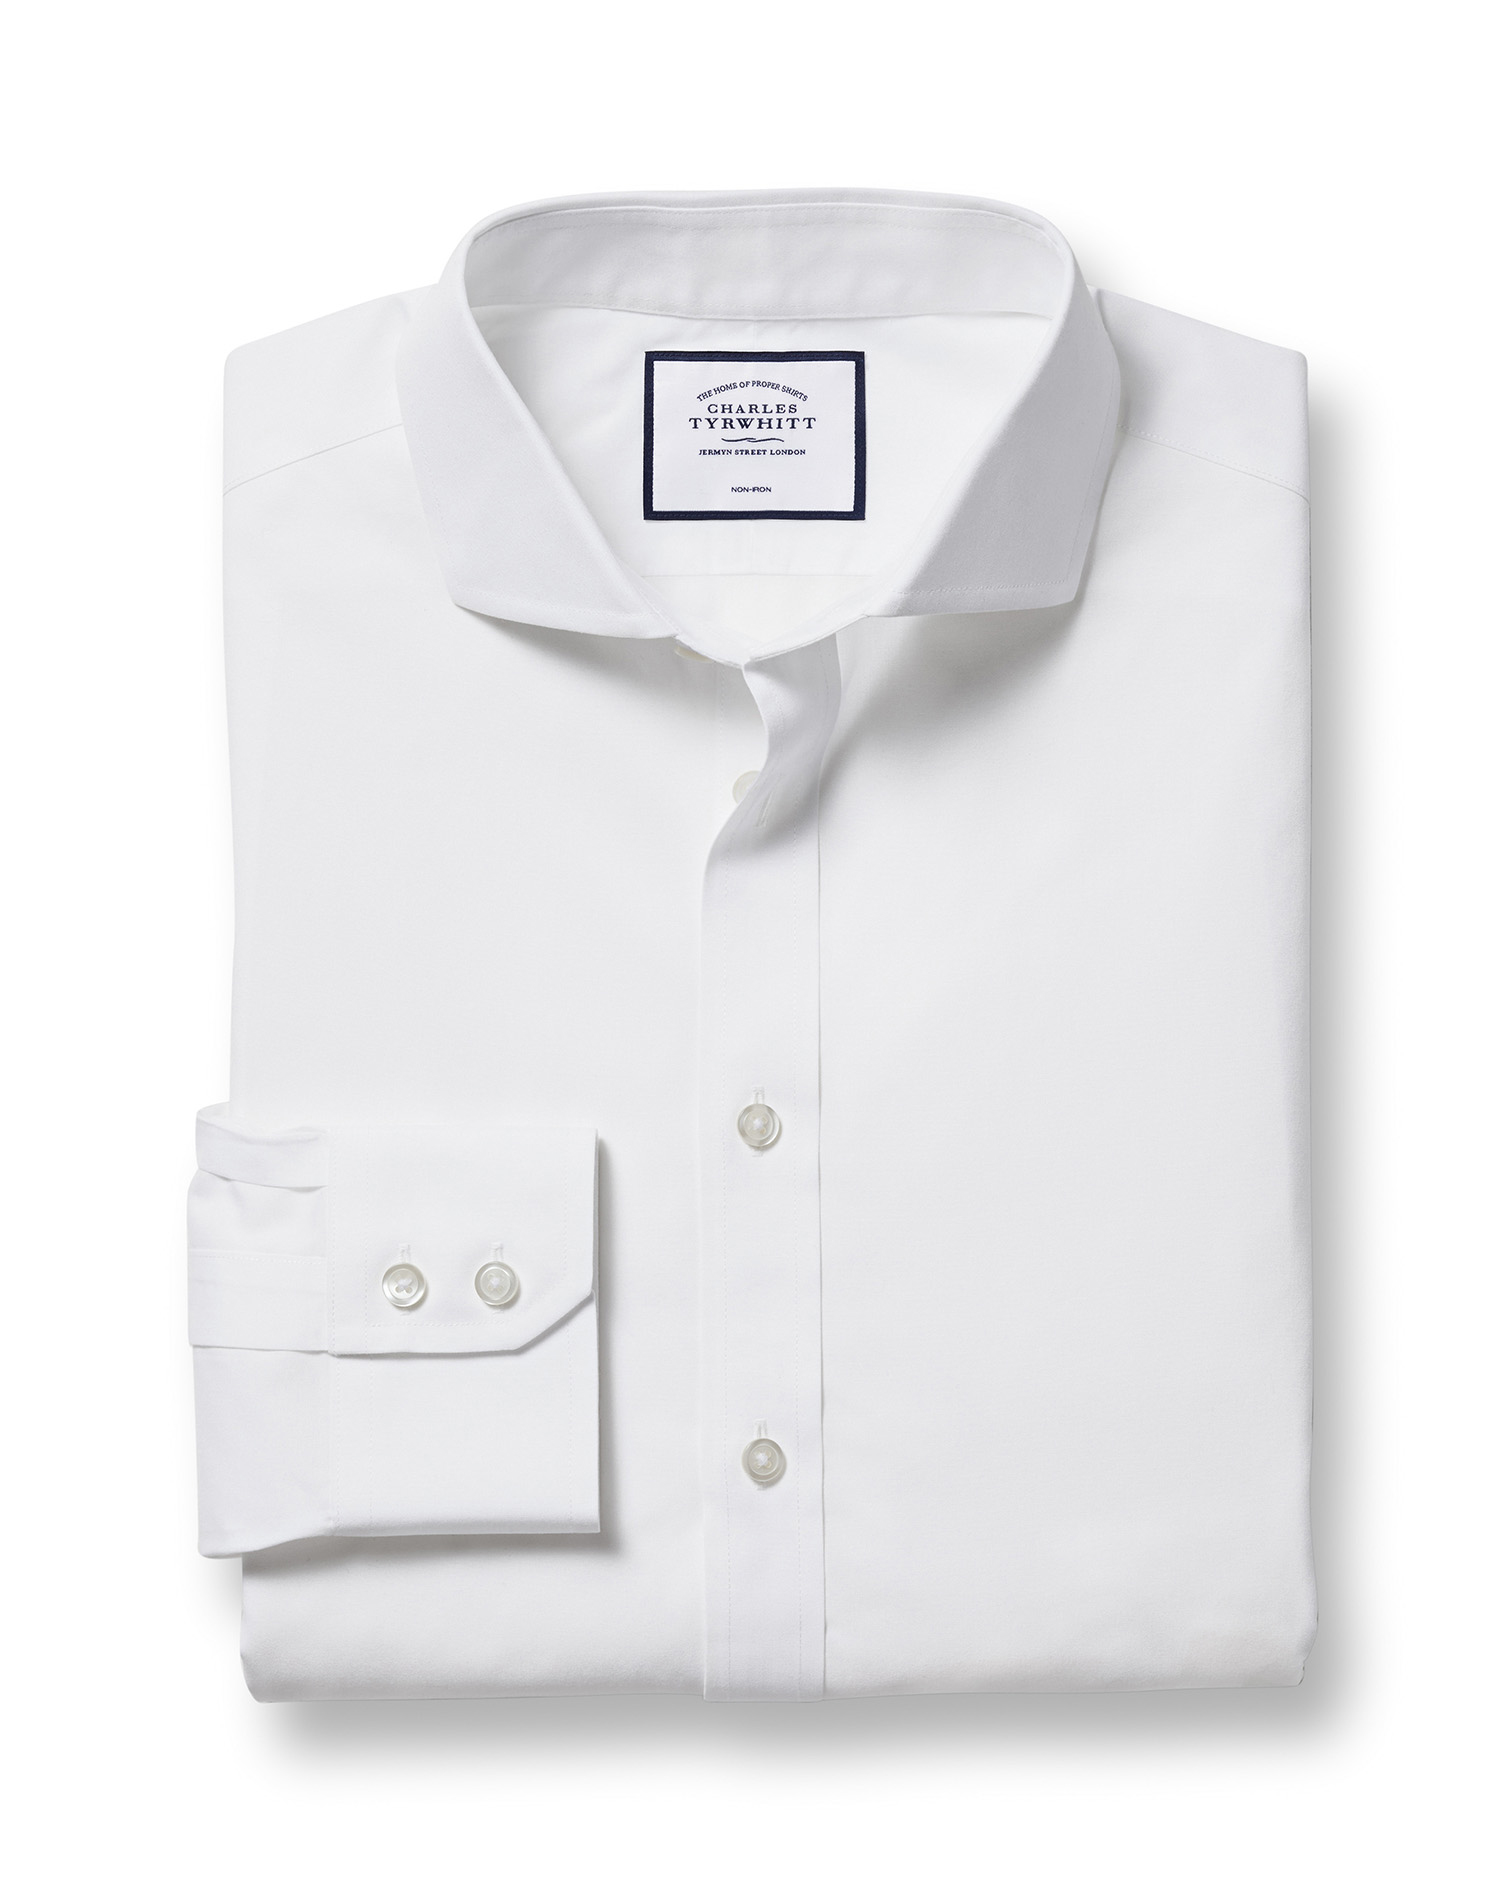 Slim Fit Cutaway Non-Iron Poplin White Cotton Formal Shirt Single Cuff Size 17/33 by Charles Tyrwhit